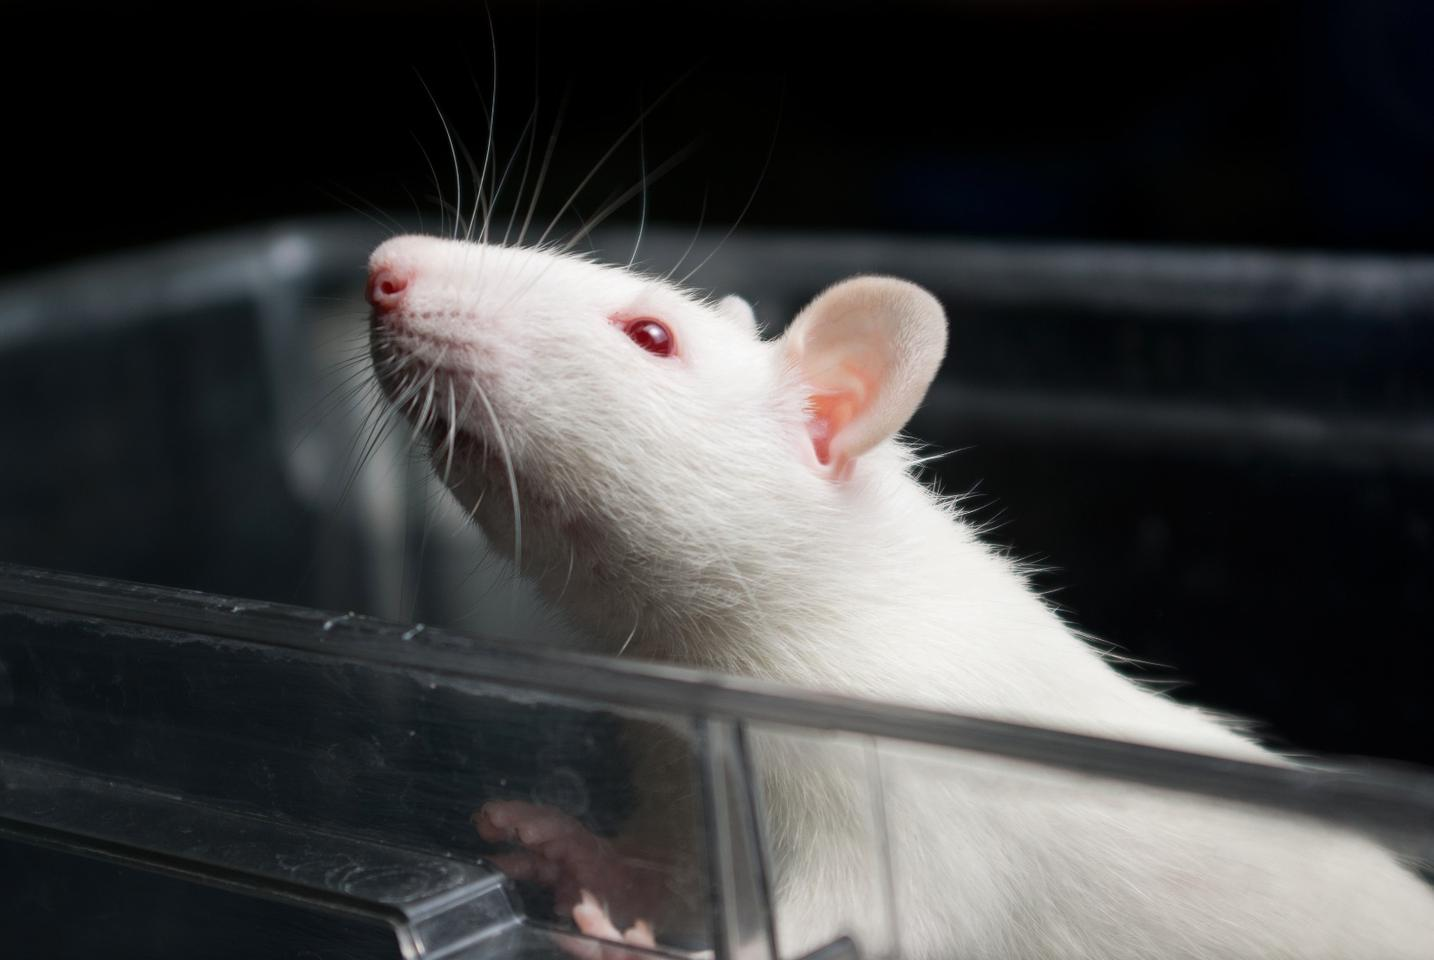 Buzzing the brain keeps rats from increasing their heroin intake